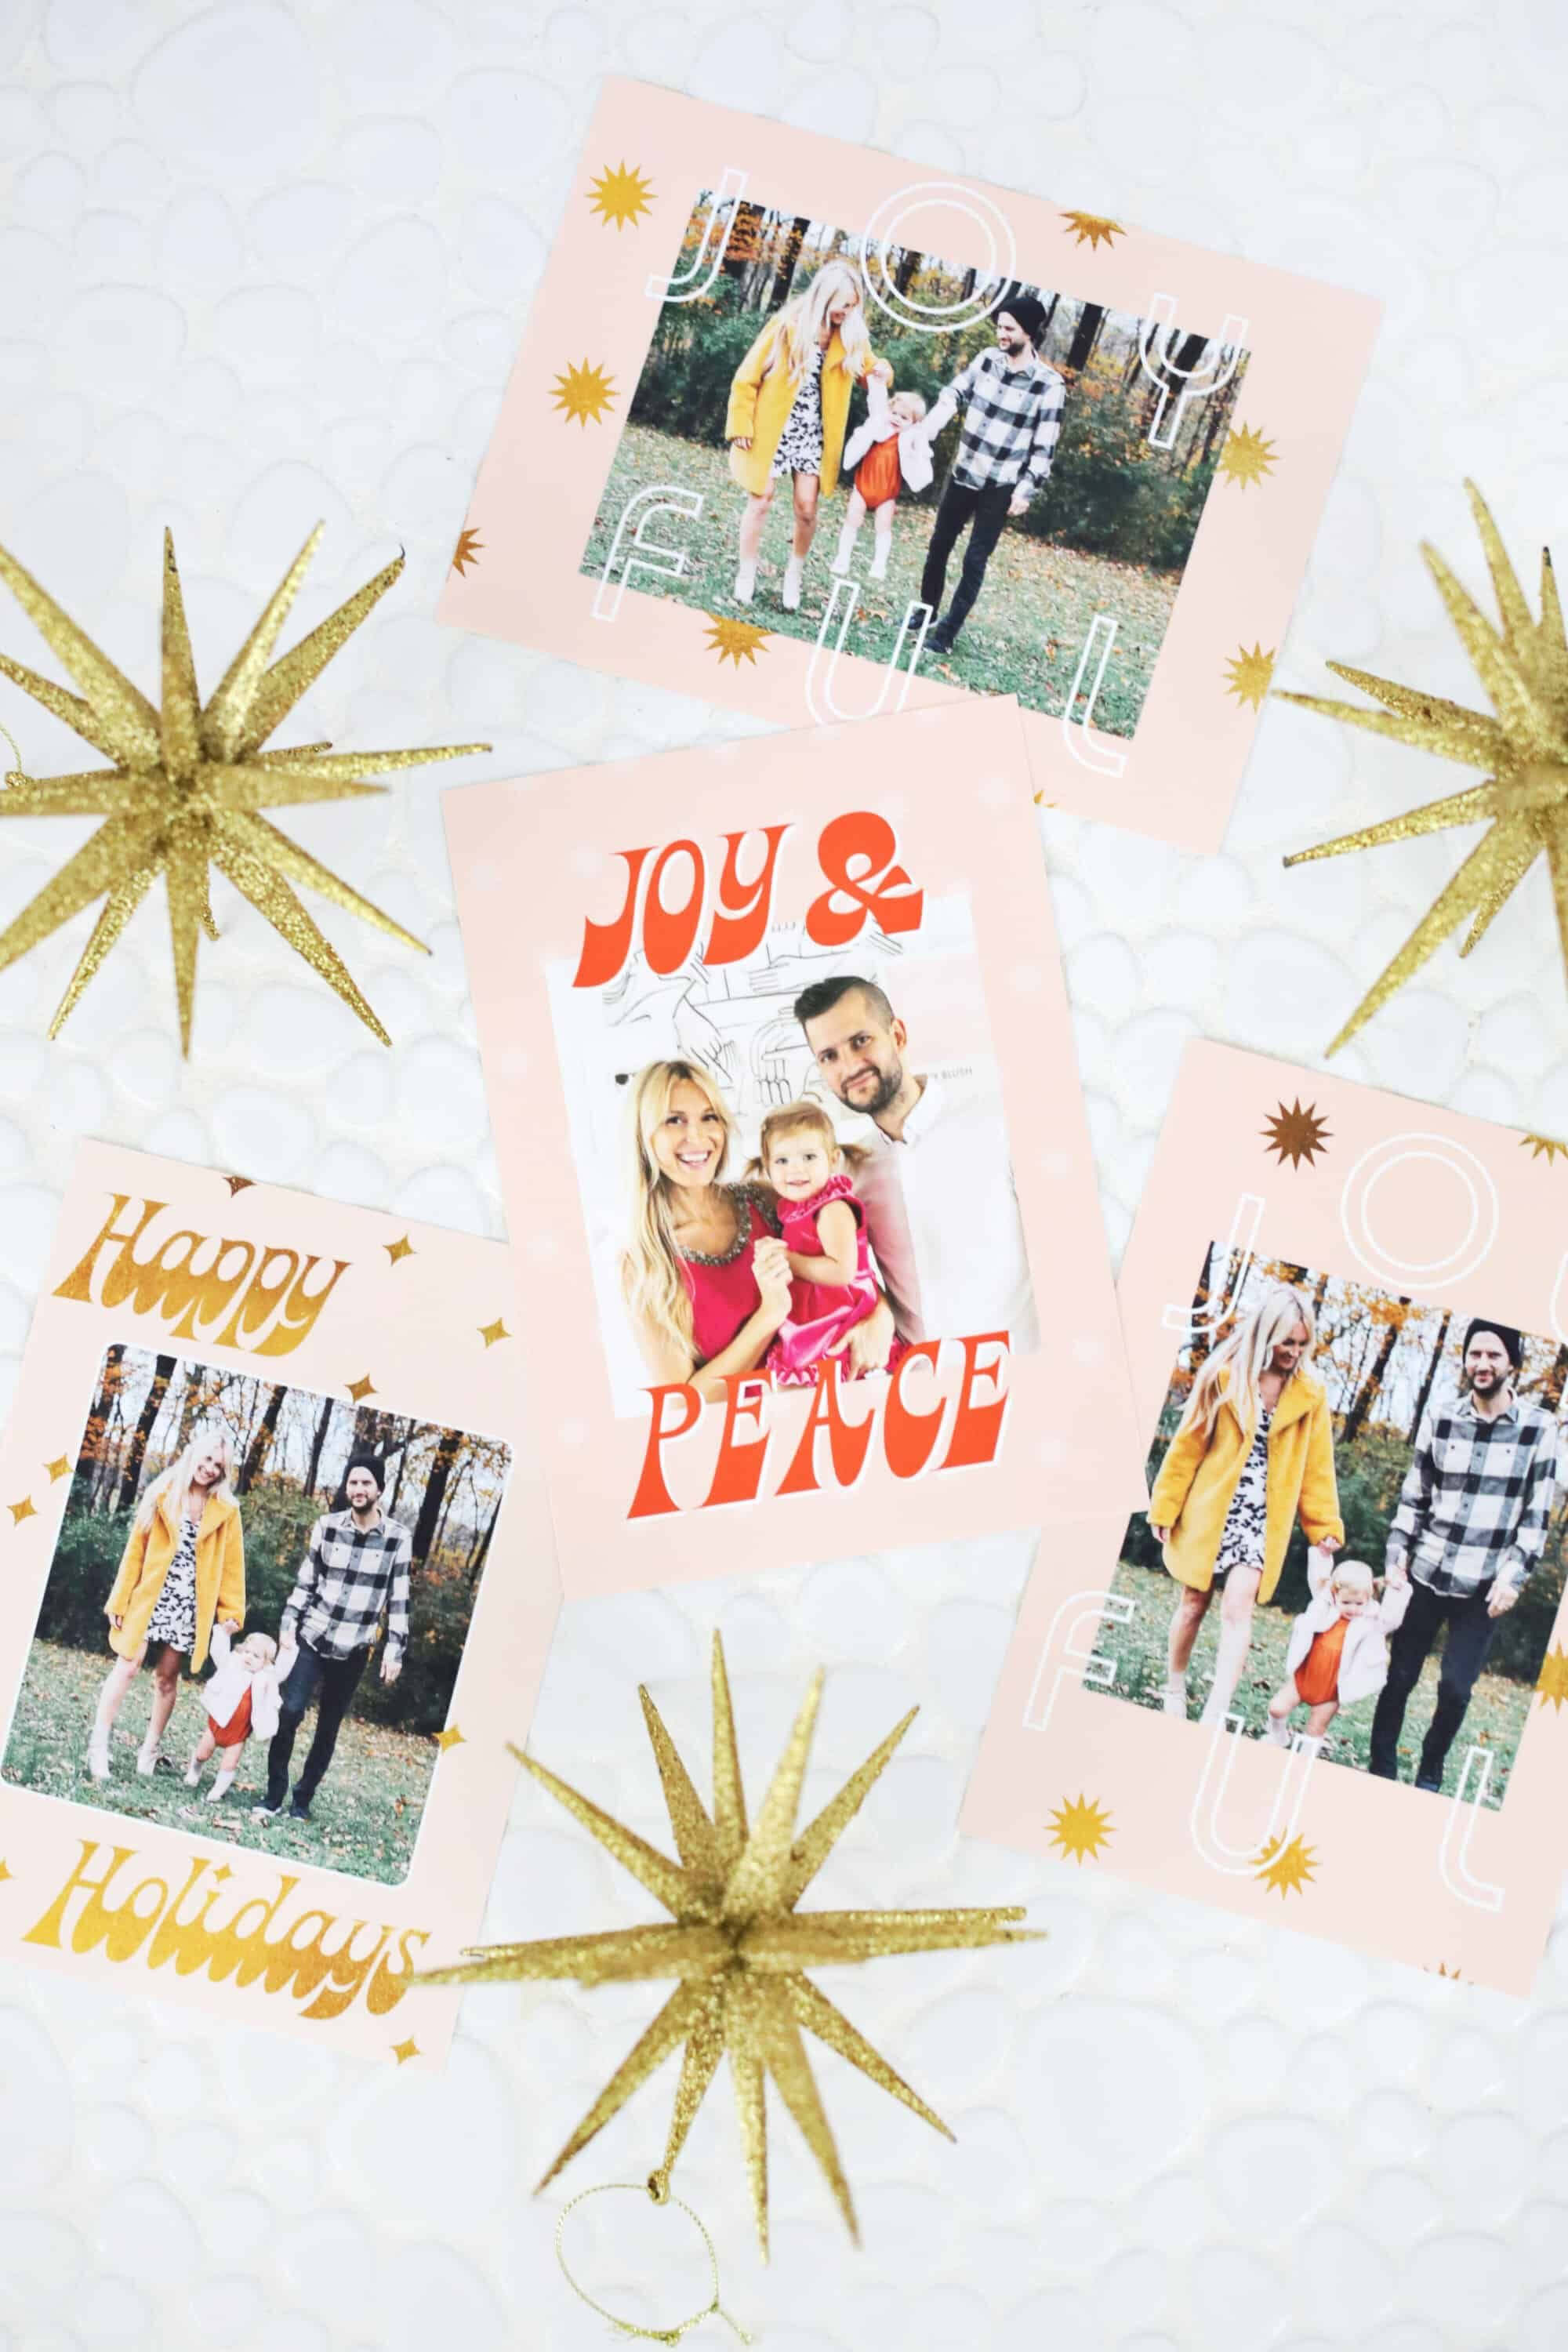 Print Your Own Holiday Cards (Free Template Included | Free Intended For Print Your Own Christmas Cards Templates